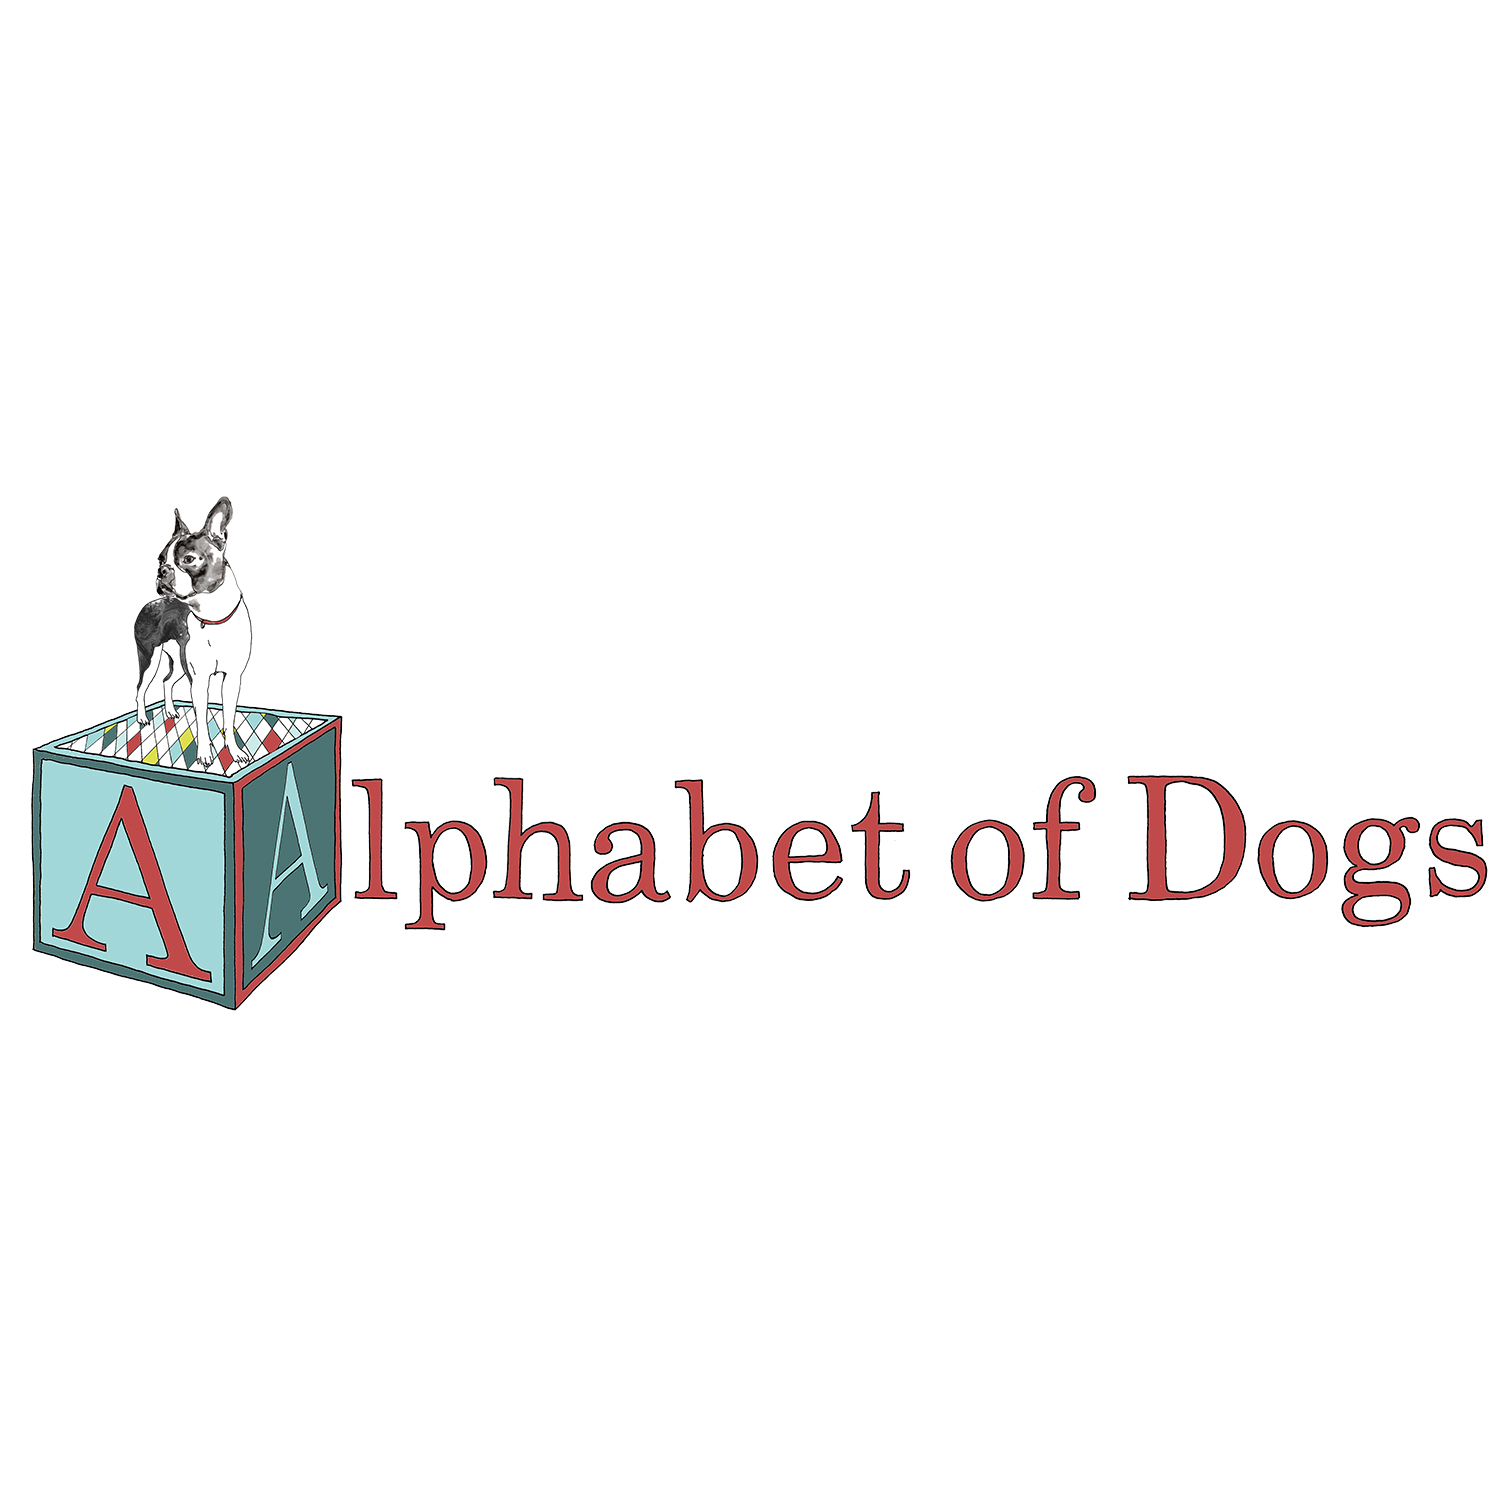 ALPHABET OF DOGS